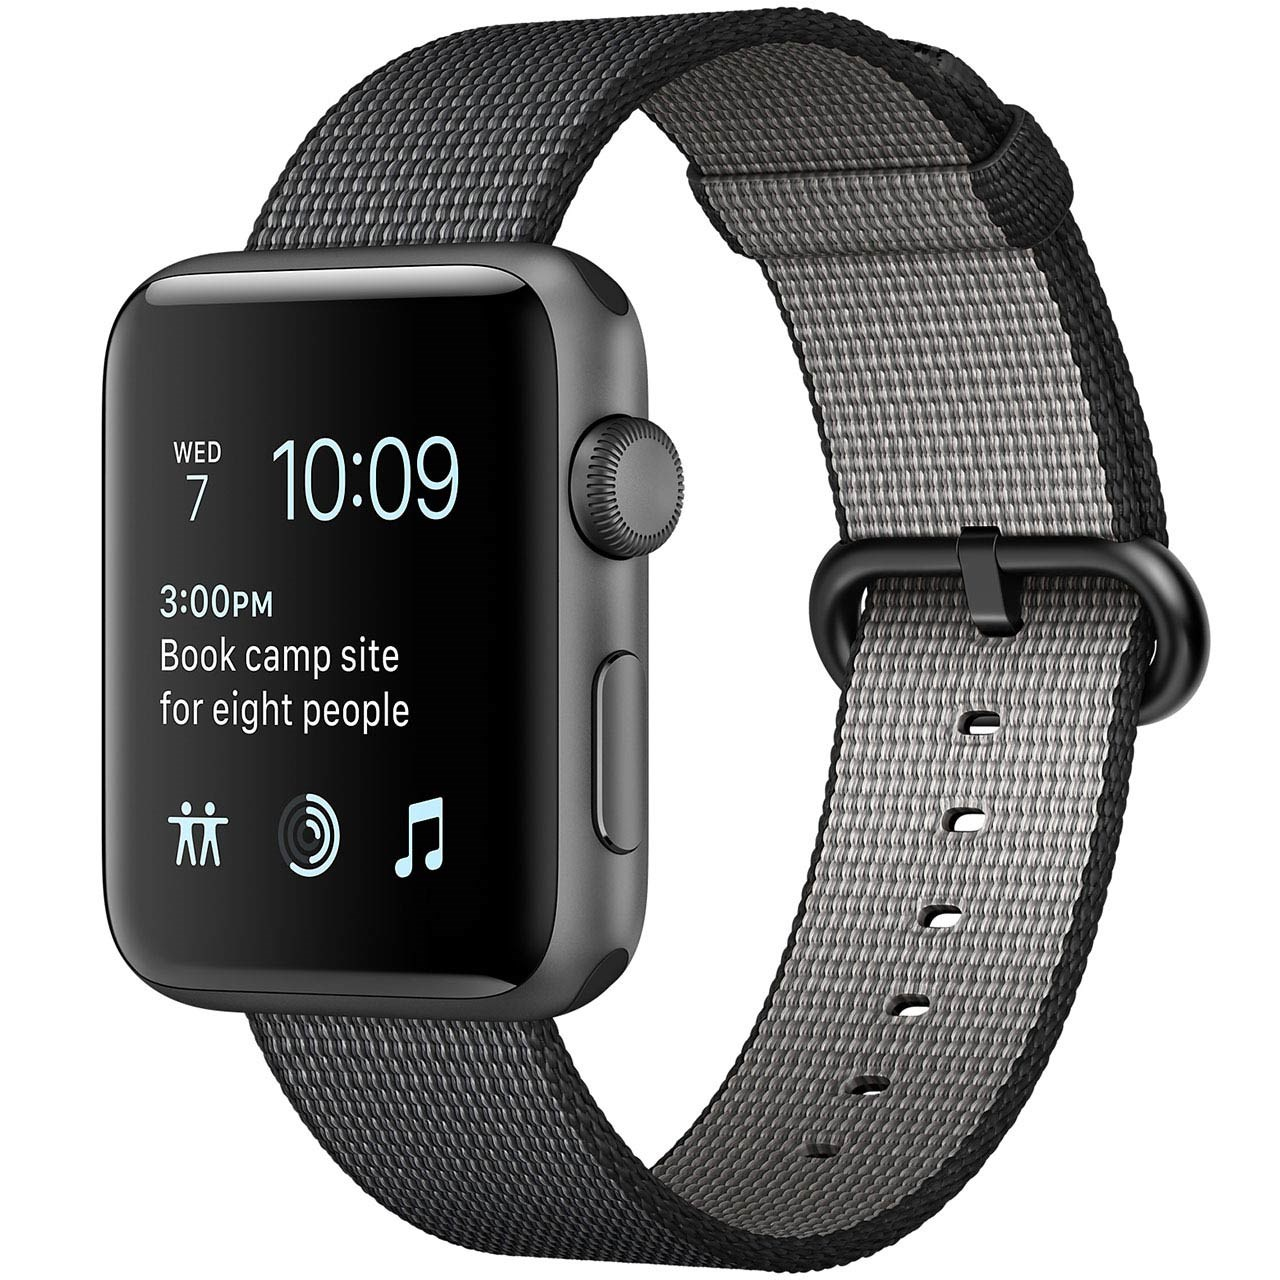 ساعت هوشمند اپل واچ سری 2 مدل 42mm Space Gray Aluminum Case with Black Woven Nylon